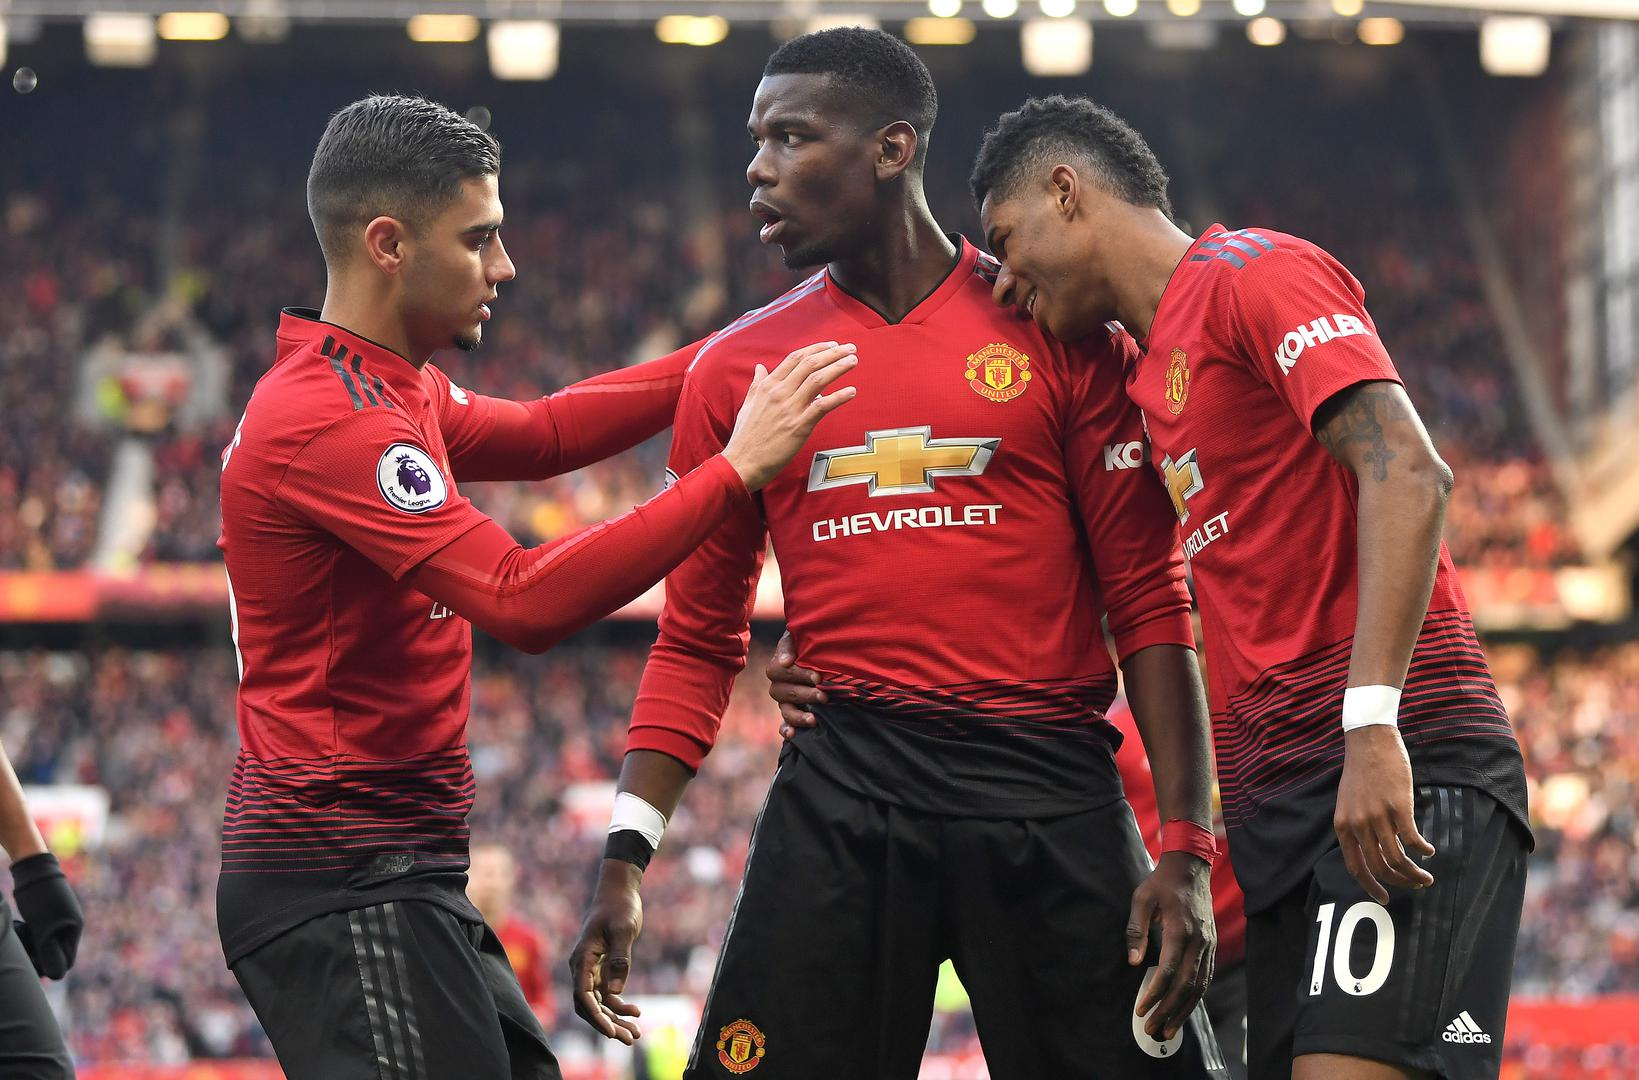 Andreas Pereira, Paul Pogba and Marcus Rashford at Old Trafford.